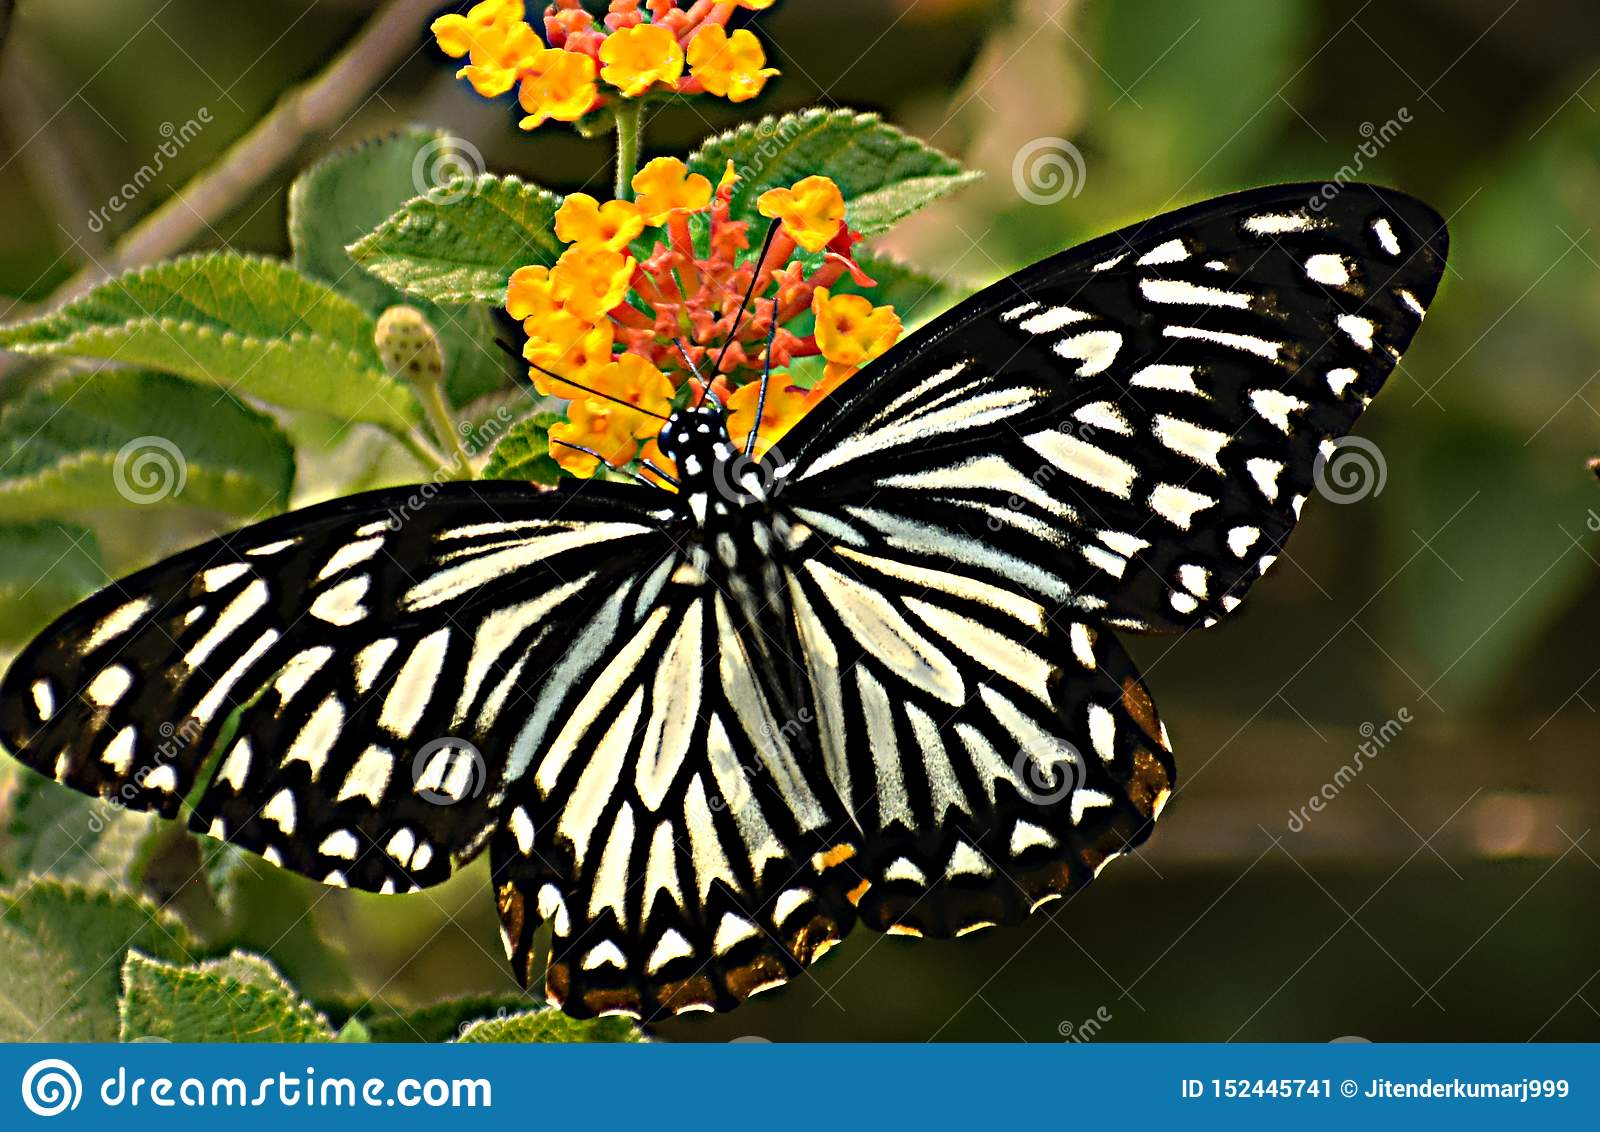 Sưu tập Bộ cánh vẩy 2 - Page 62 Wonderful-oriental-common-mime-papilio-clytia-clytia-butterfly-its-amazing-butterfly-its-too-similar-to-common-mime-butterfly-152445741